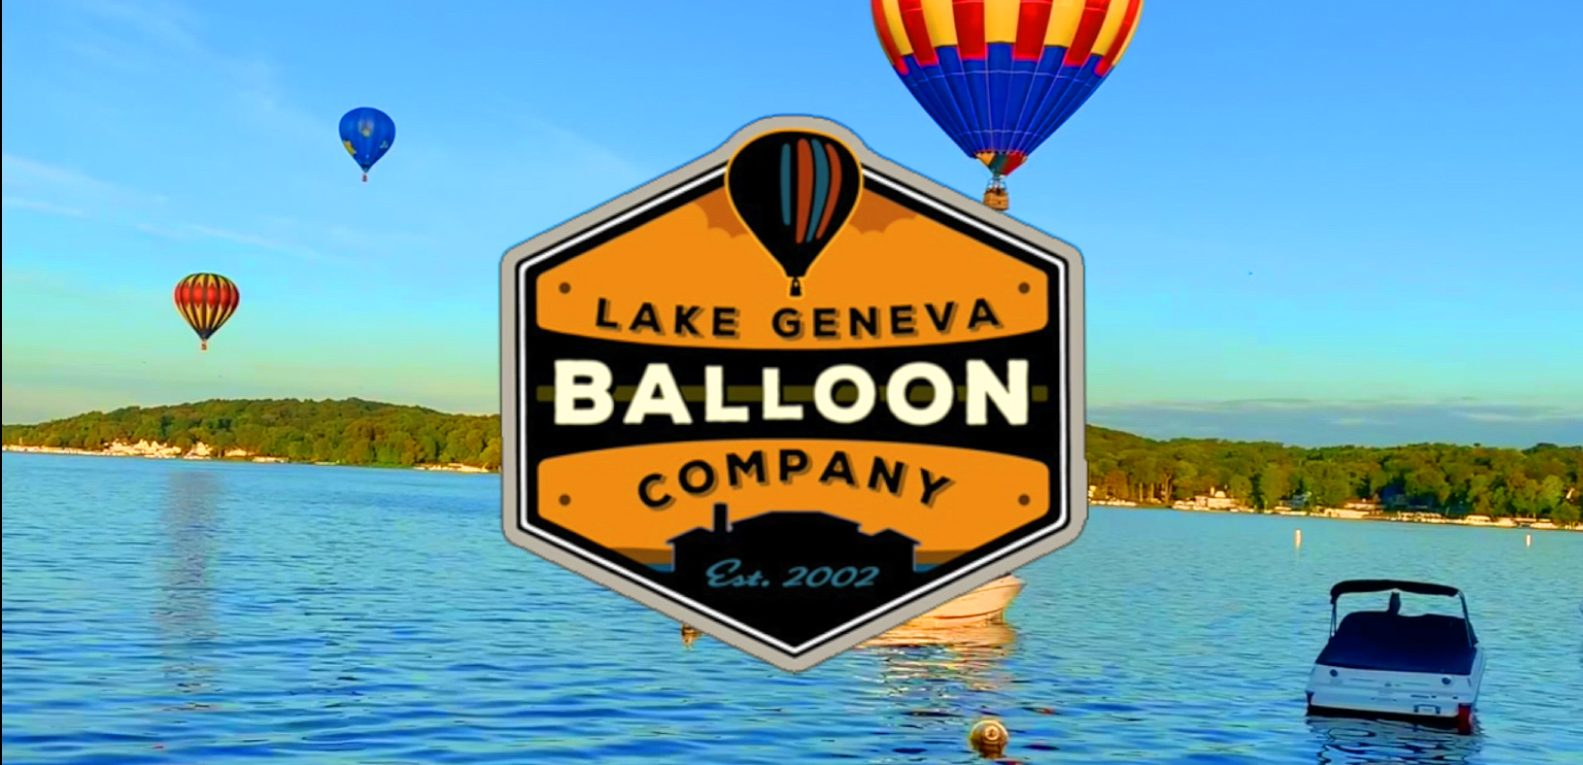 Lake Geneva Balloon Company